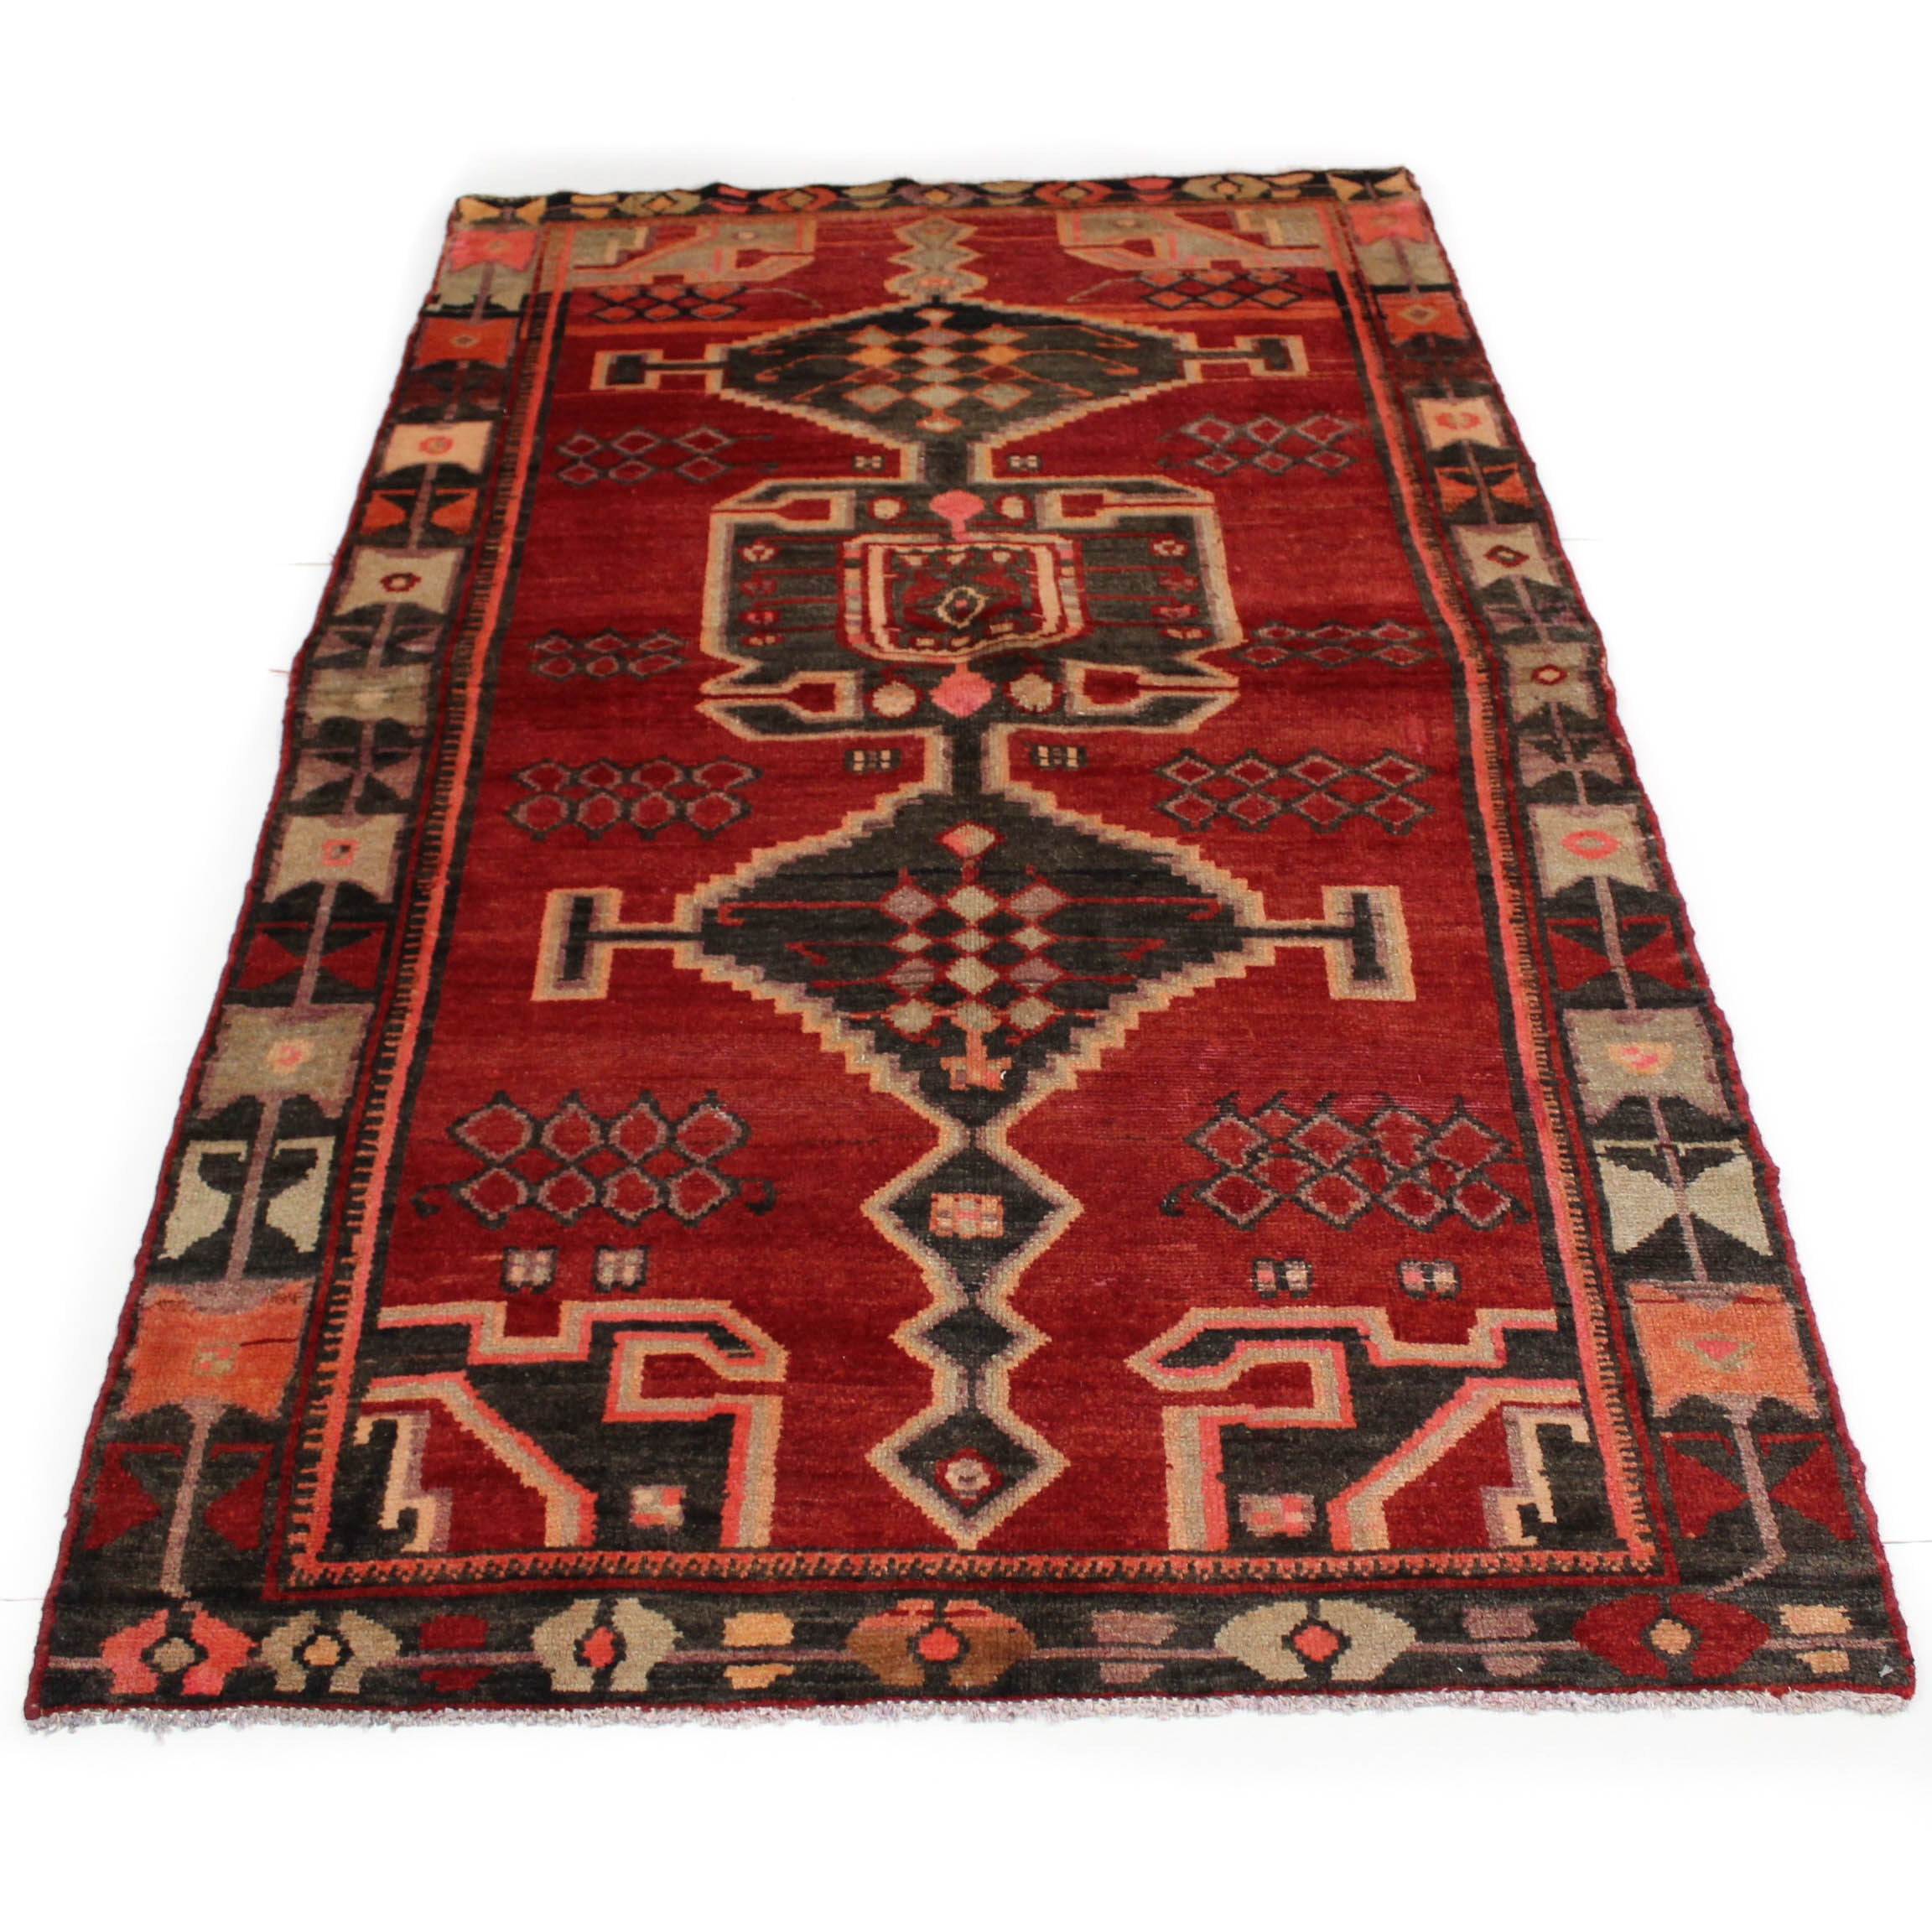 4'1 x 7'1 Semi-Antique Hand-Knotted Persian Northwest Rug